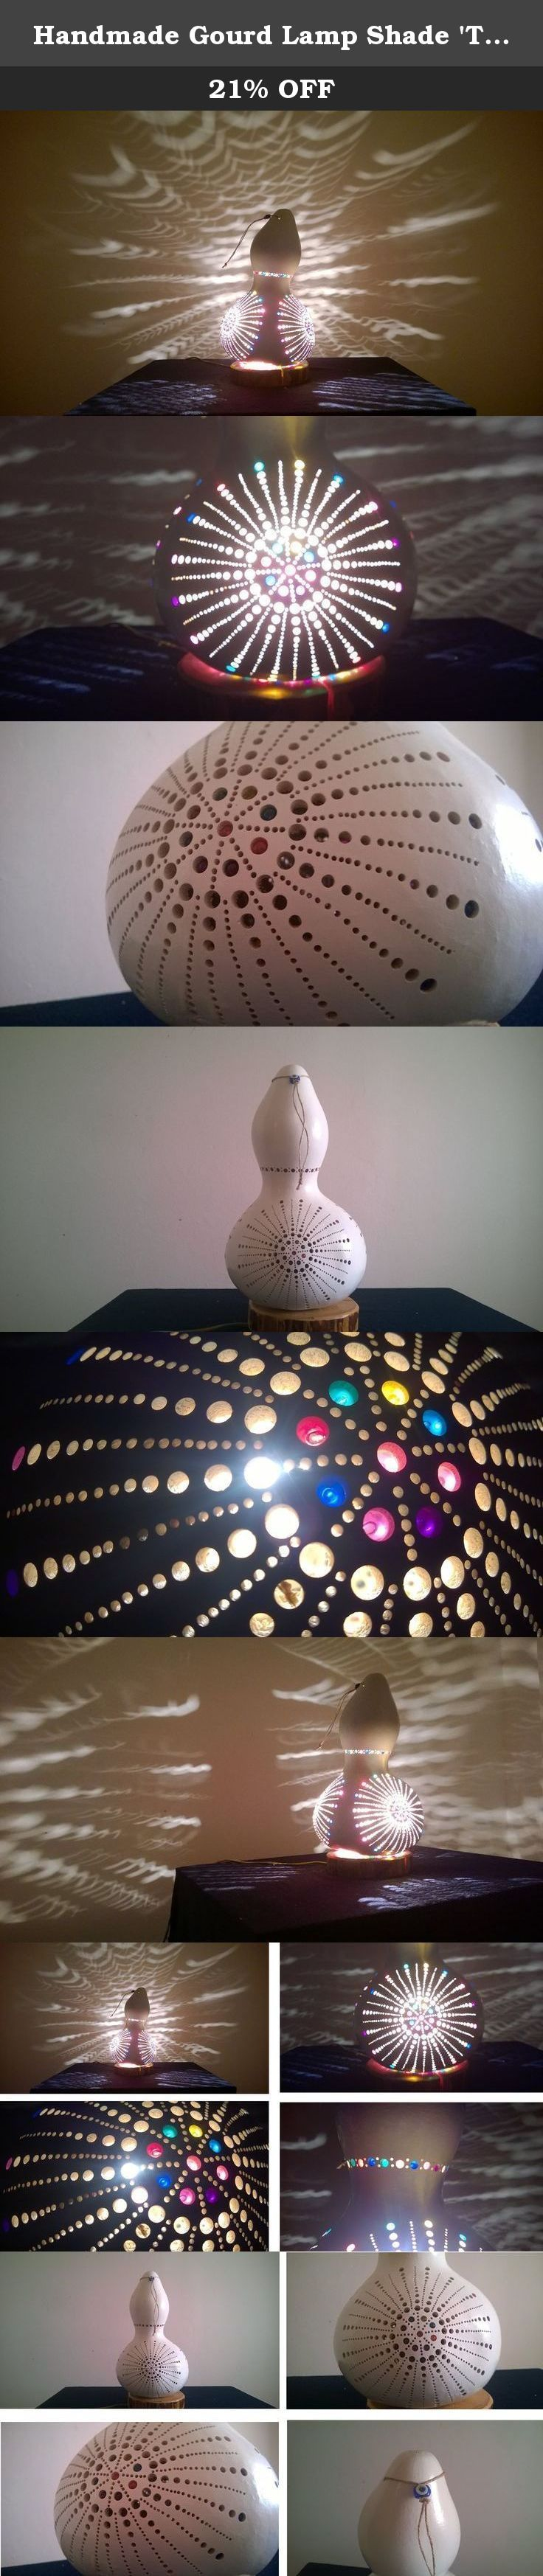 Handmade Gourd Lamp Shade 'The Three Sunrises' Medium Size. Welcome. My objective is to send you a unique, truely handmade, authentic product from the Mediterranean with a reasonable cost. So please read the next three pharagraphs carefully before making a decision. I work with selected farmers who water calabash excessively (the main material) and feed them with goat based fertilisers so that they grow up strong and thick. But when it comes to shipping, they are delicate, fragile and...